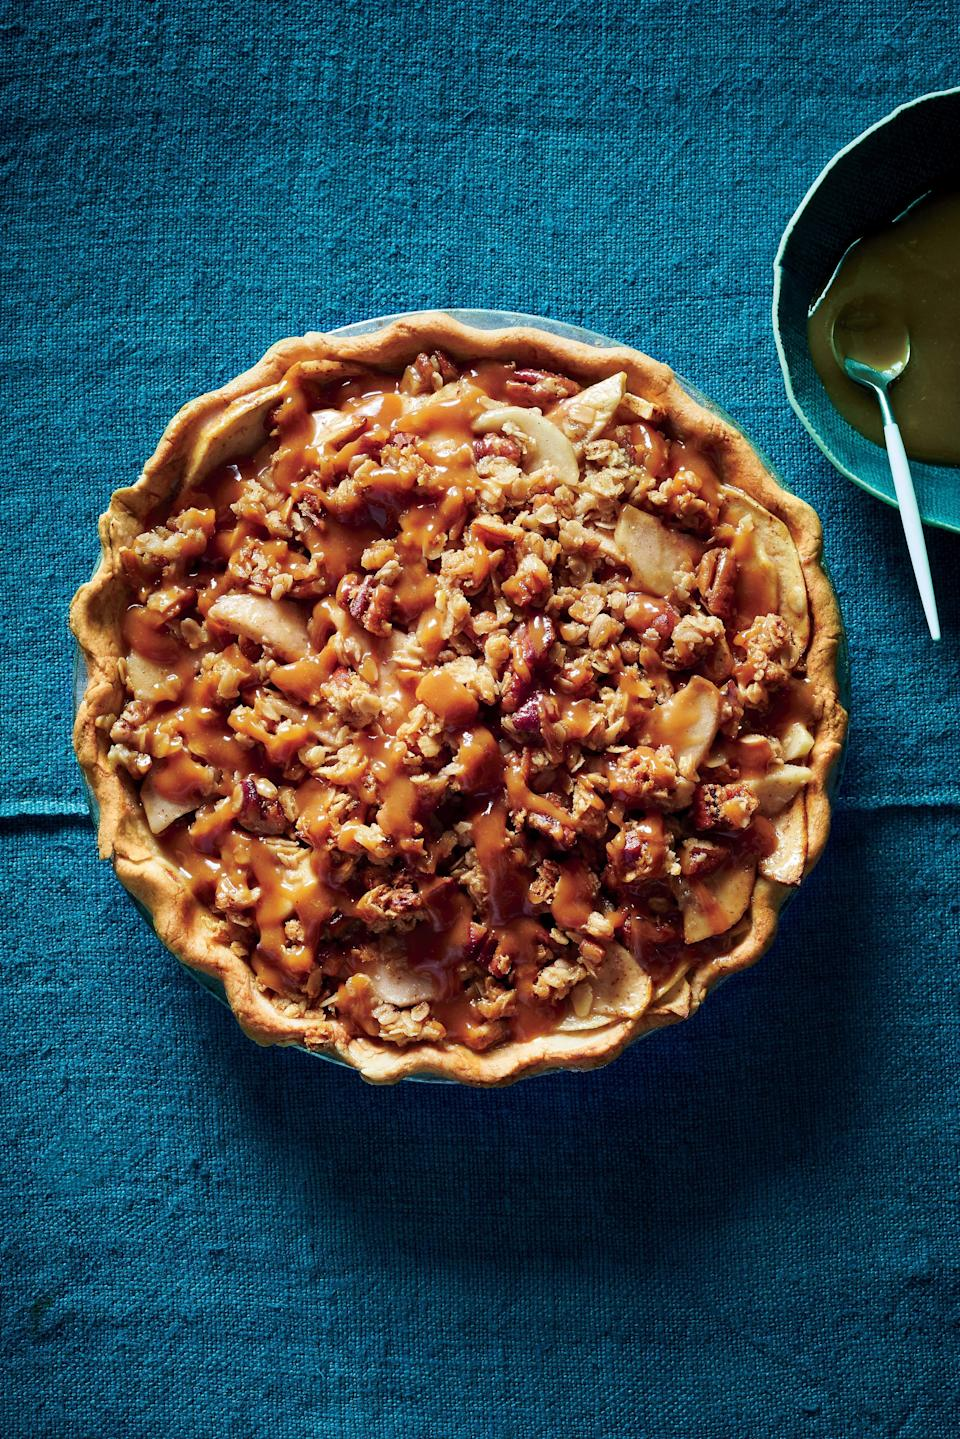 """<p>You've no doubt heard of--and enjoyed--salted caramel. Miso caramel takes that concept one step further, offering depth and richness that's unparalleled. Even though this pie is rather decadent, it still comes in with 12g less sugar than a popular online version of caramel-apple pie.</p> <p><a href=""""https://www.myrecipes.com/recipe/miso-caramel-apple-pie"""" rel=""""nofollow noopener"""" target=""""_blank"""" data-ylk=""""slk:Miso Caramel-Apple Pie Recipe"""" class=""""link rapid-noclick-resp"""">Miso Caramel-Apple Pie Recipe</a></p>"""